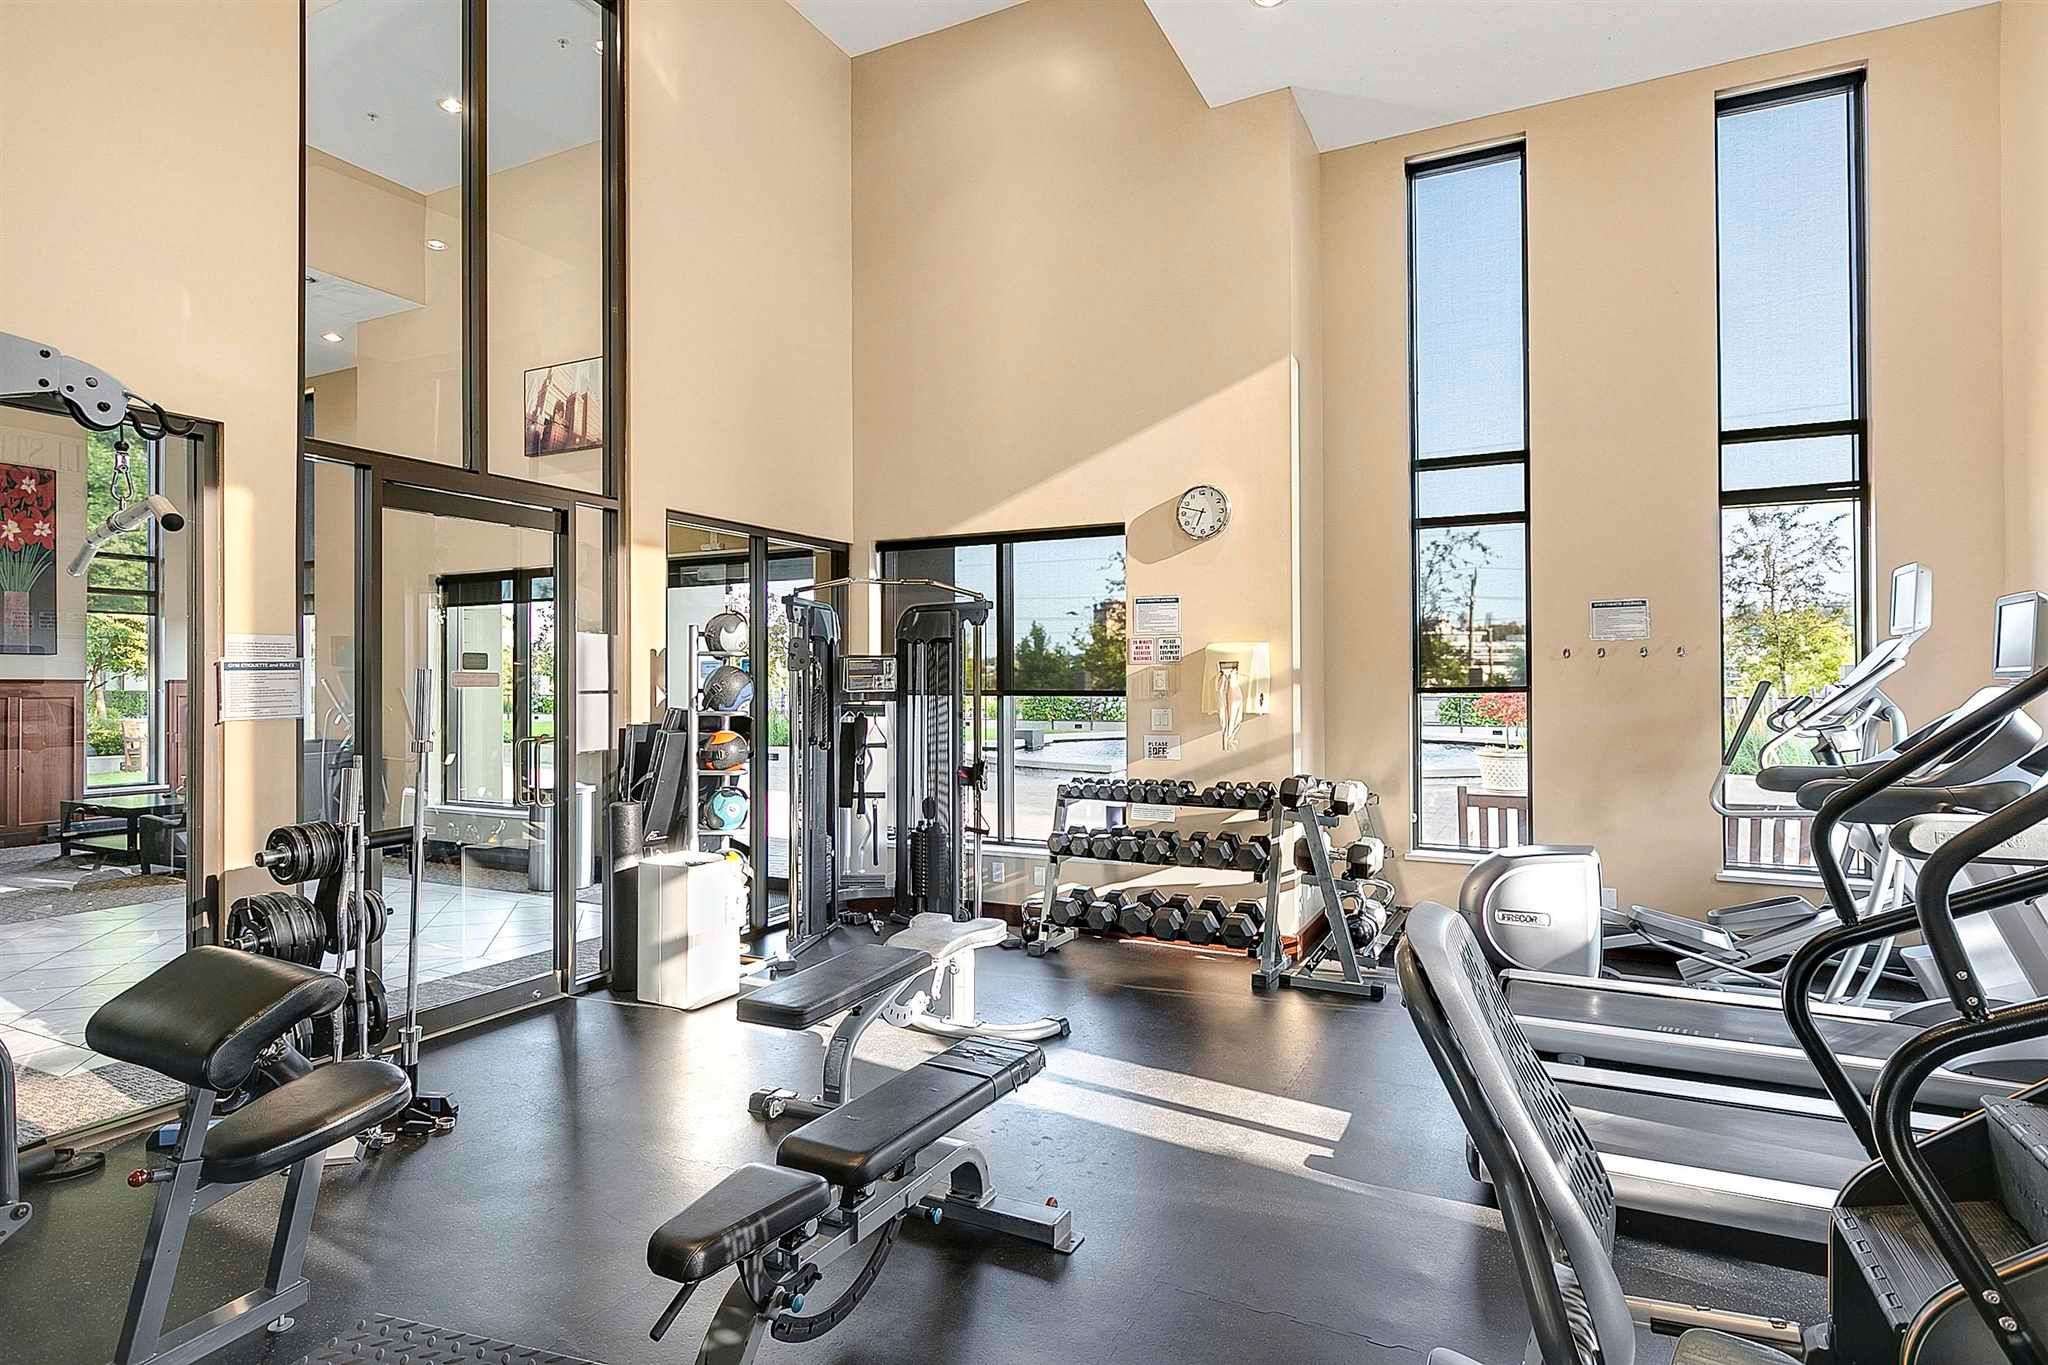 """Photo 24: Photos: 506 2345 MADISON Avenue in Burnaby: Brentwood Park Condo for sale in """"ONE MADISON AVENUE"""" (Burnaby North)  : MLS®# R2601656"""